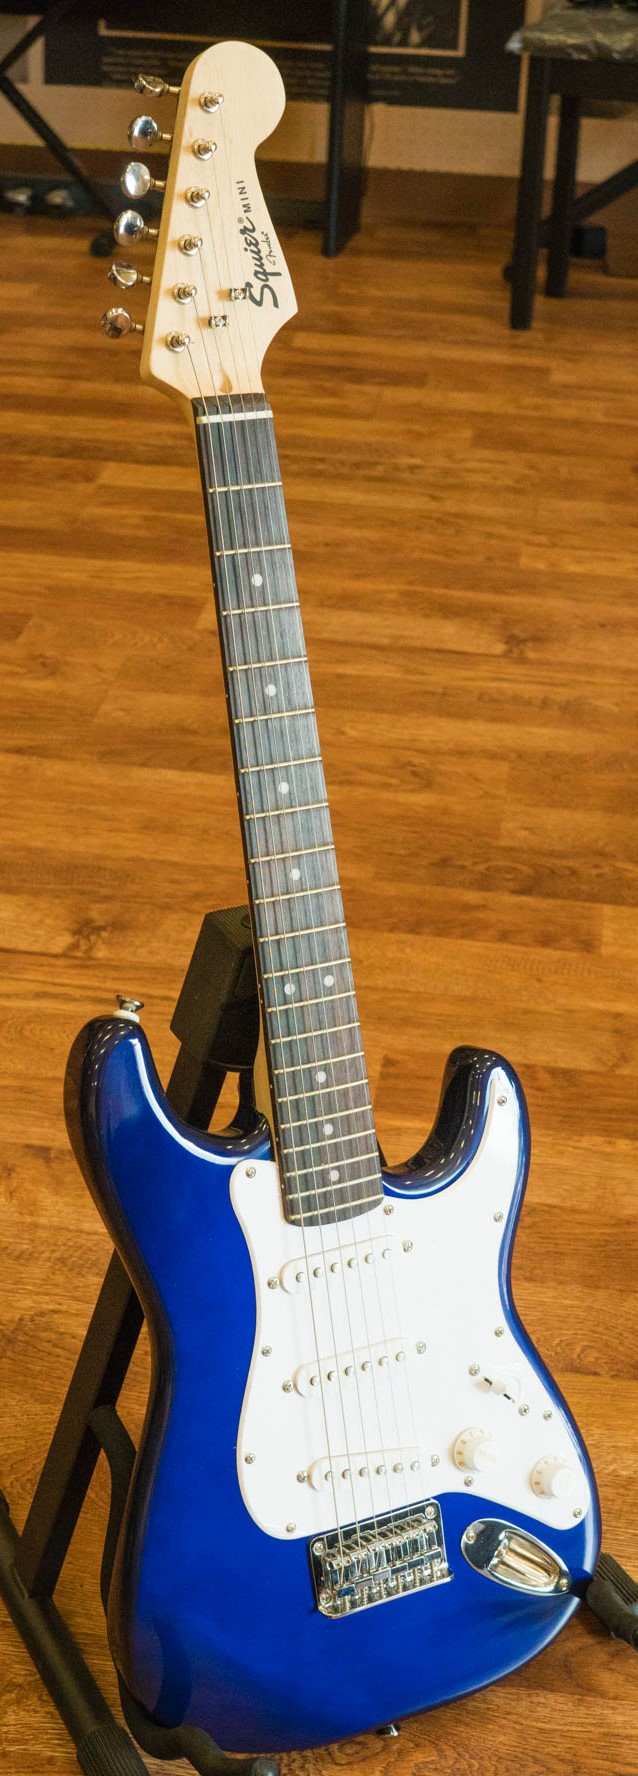 squier by fender mini strat electric guitar blue ebay. Black Bedroom Furniture Sets. Home Design Ideas